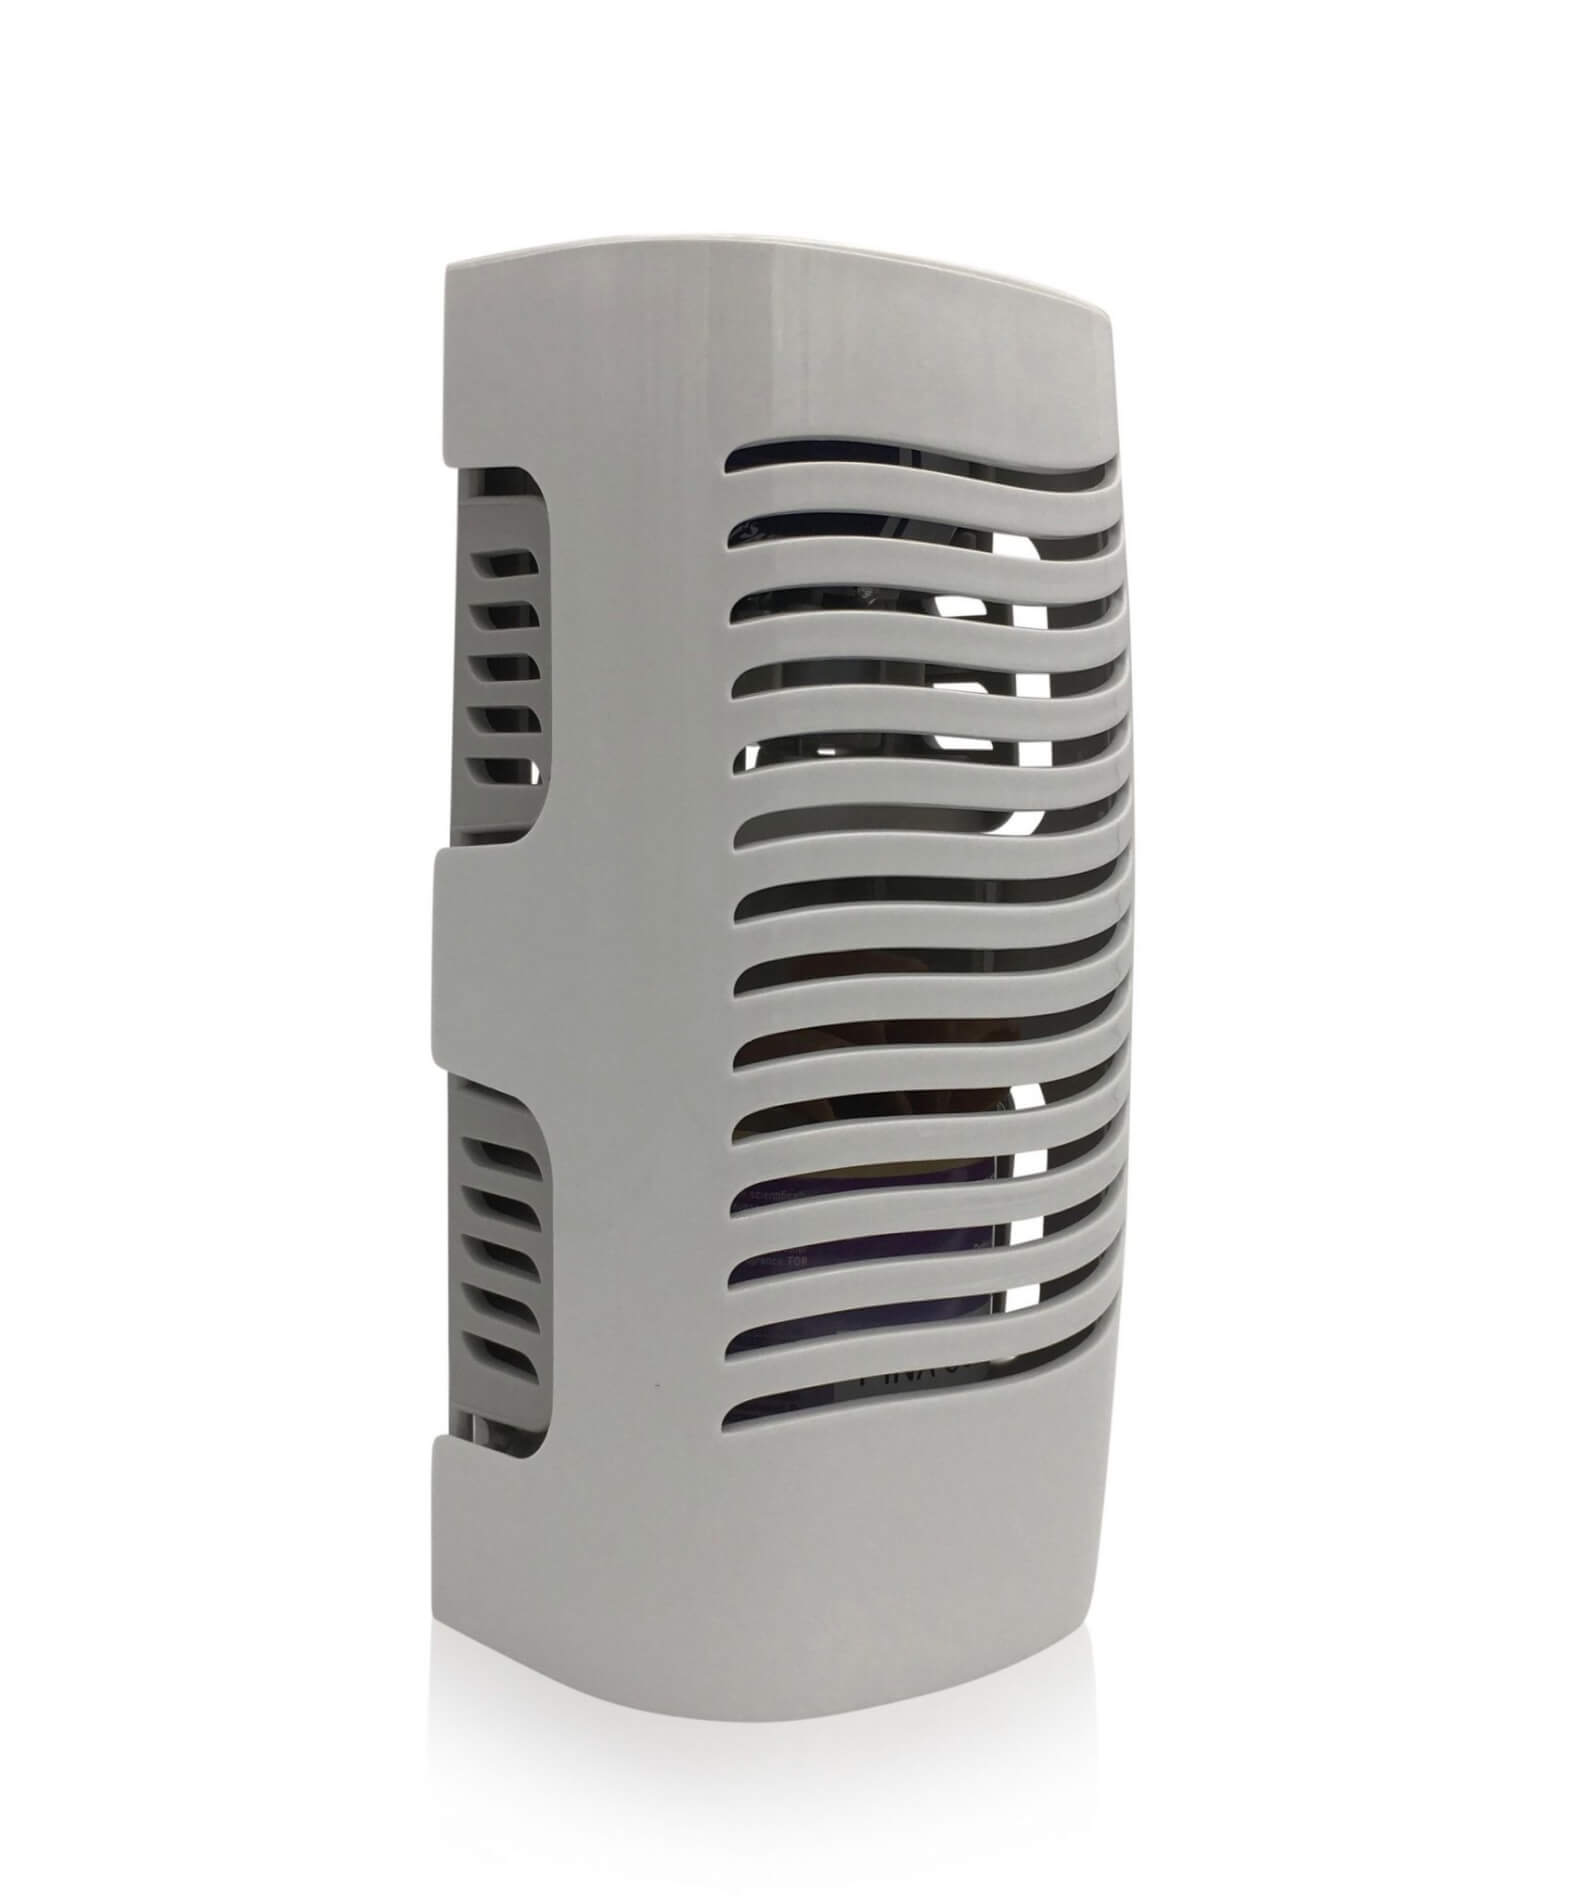 Air-Scent Commercial Air Freshener Dispenser